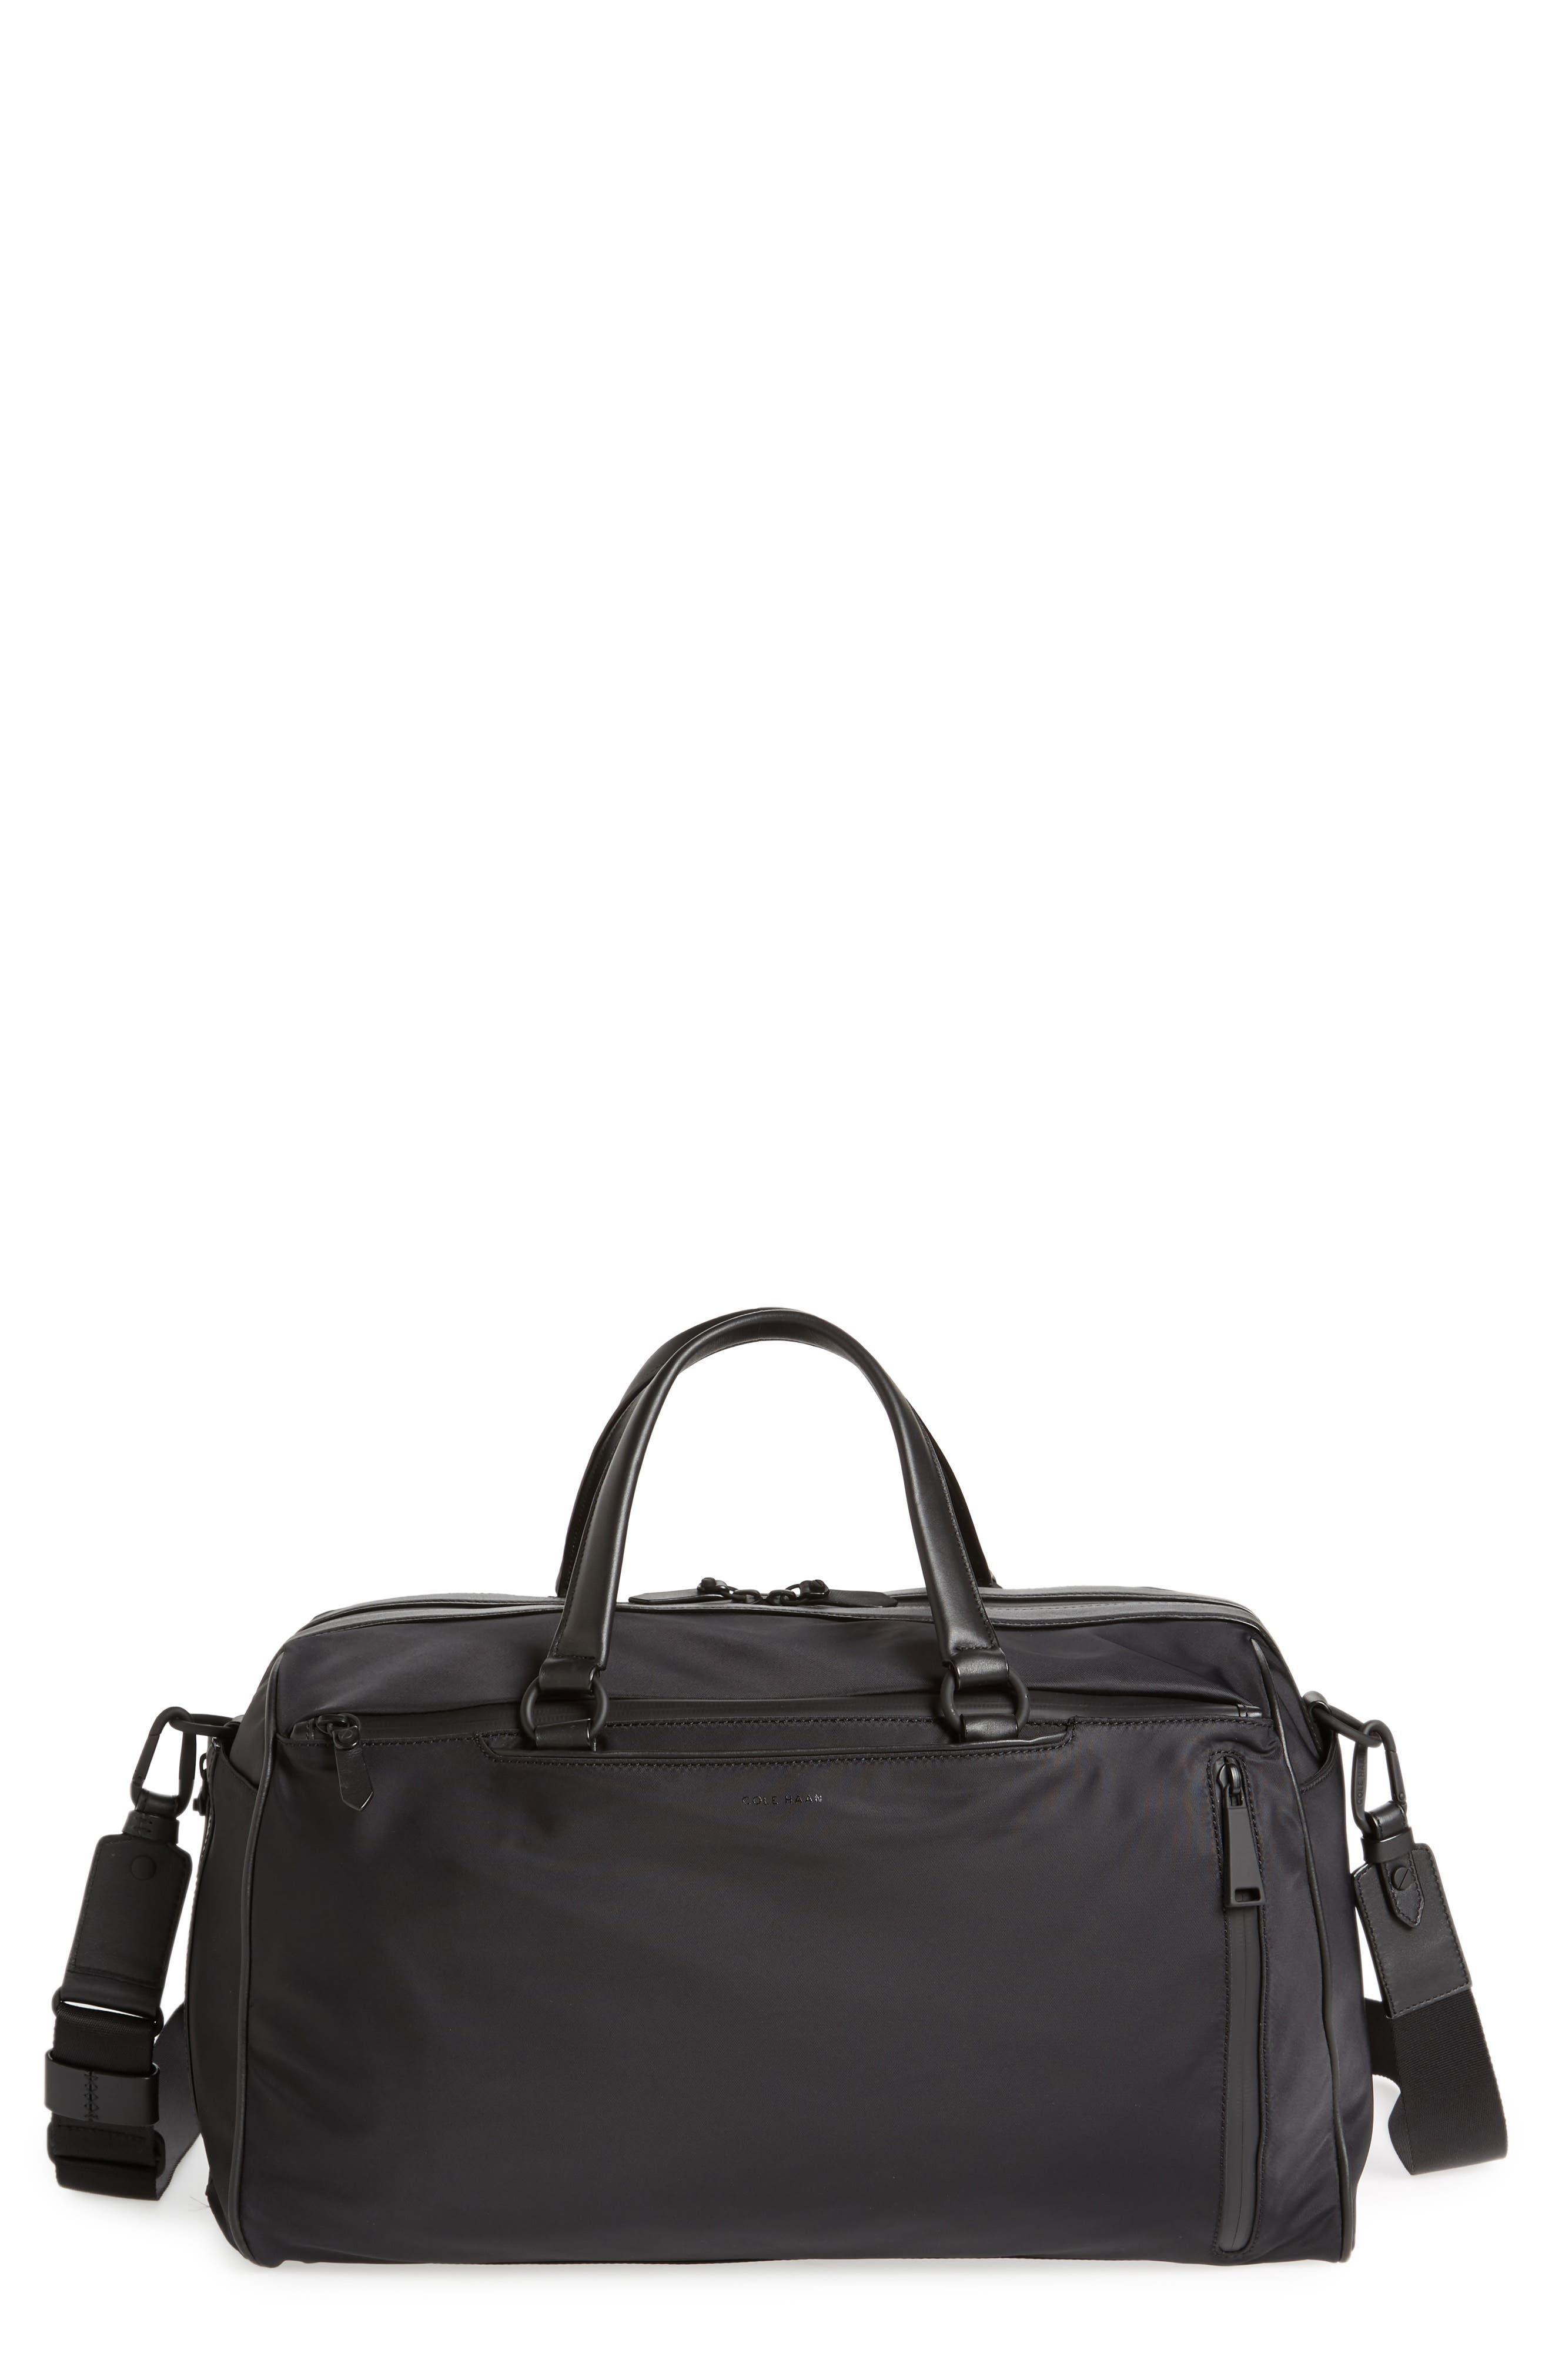 Main Image - Cole Haan Everyday Nylon Duffel Bag